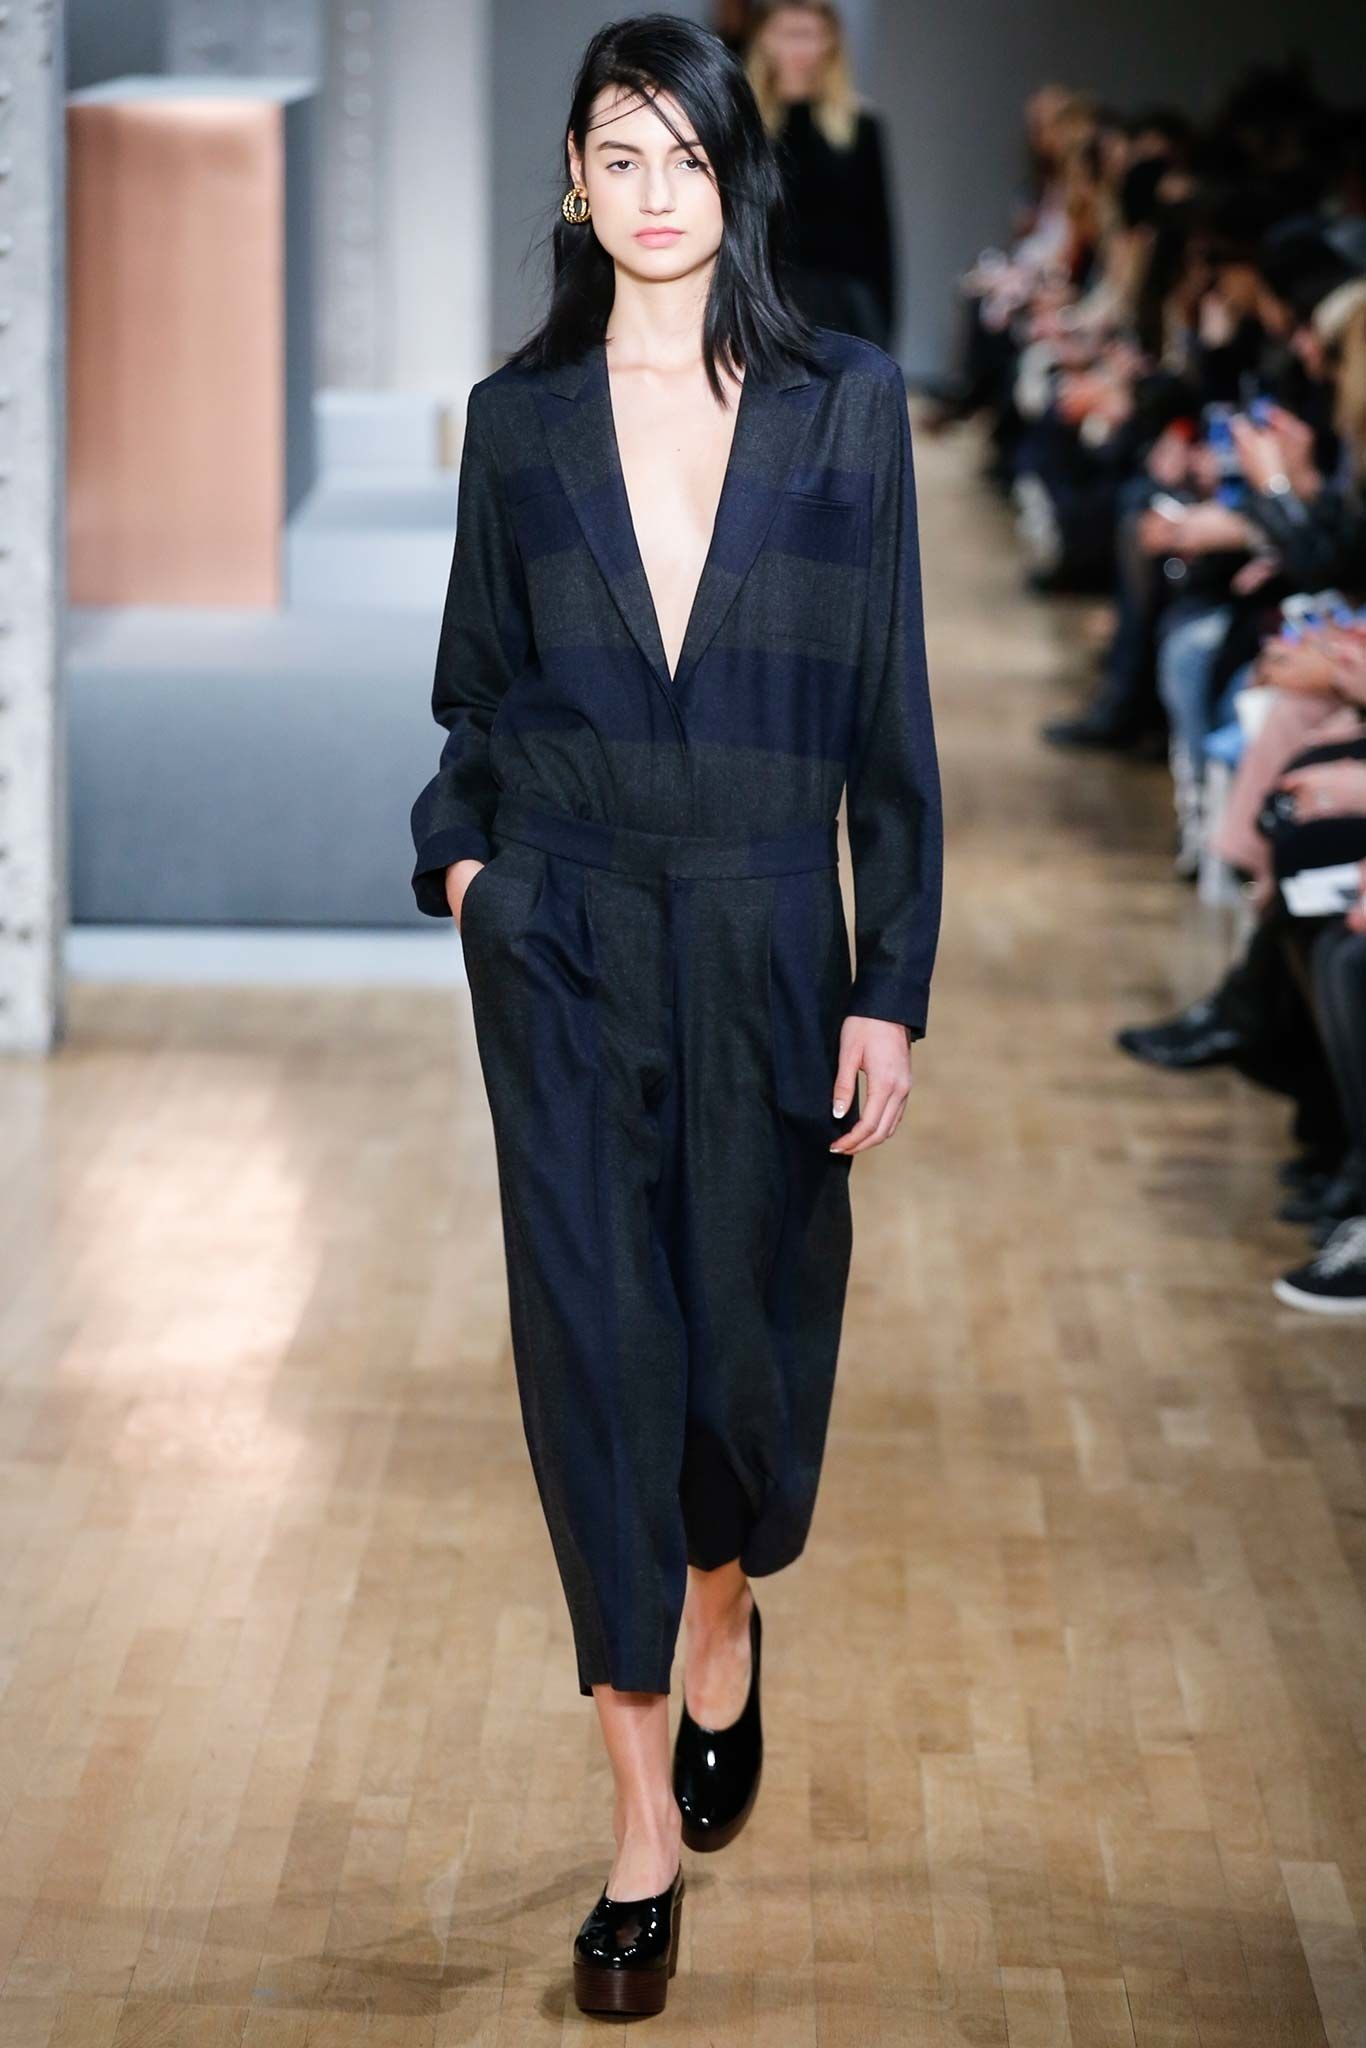 Tibi Fall 2015 Ready-to-Wear Fashion Show - Bruna Ludtke